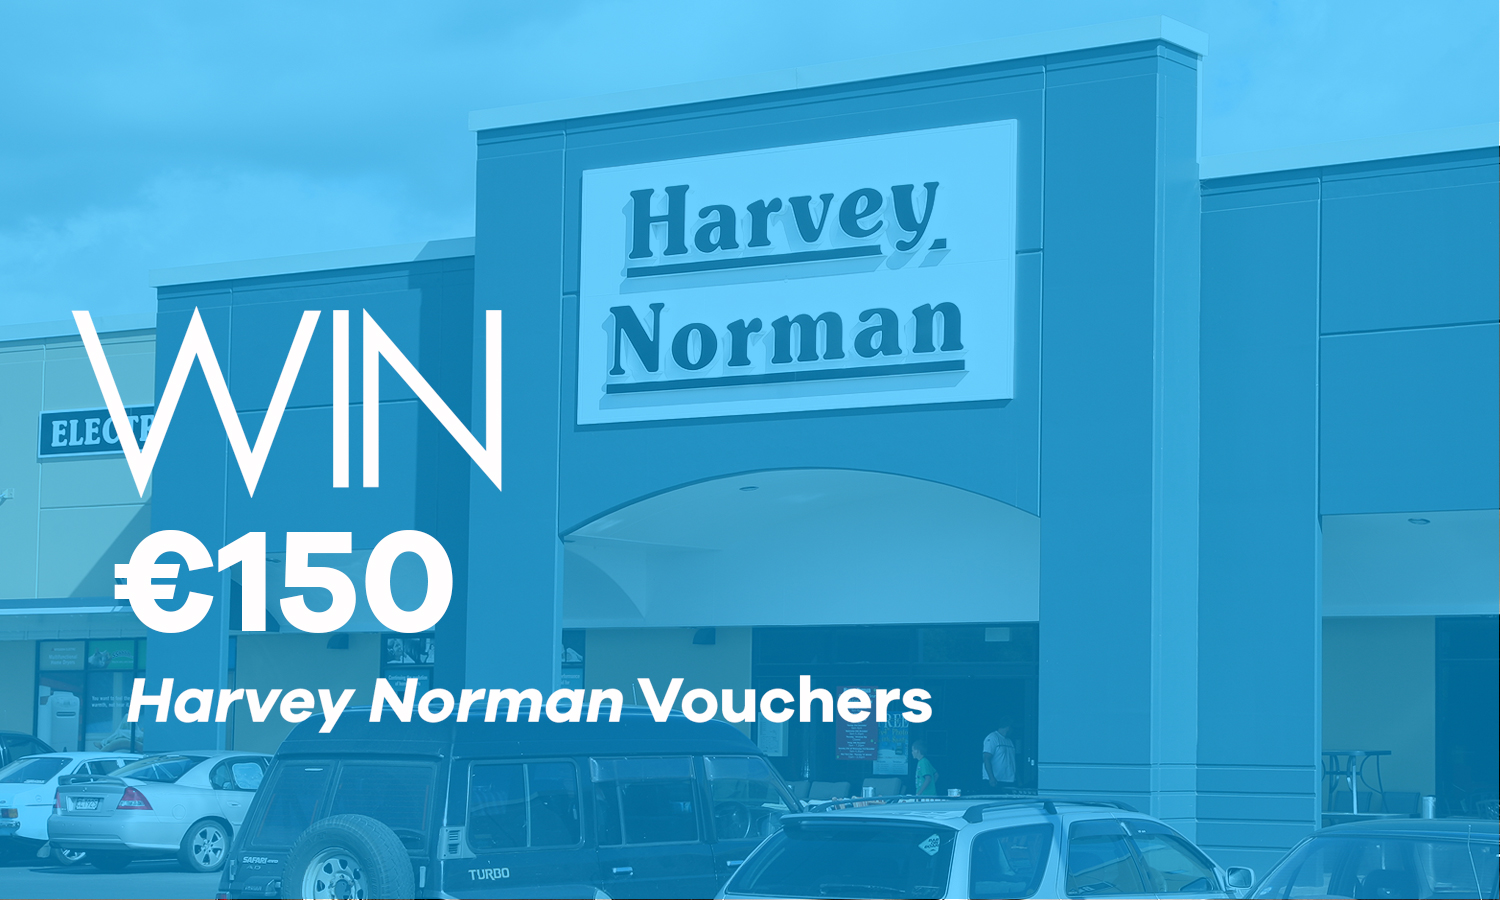 win 150 harvey norman vouchers free competitions. Black Bedroom Furniture Sets. Home Design Ideas